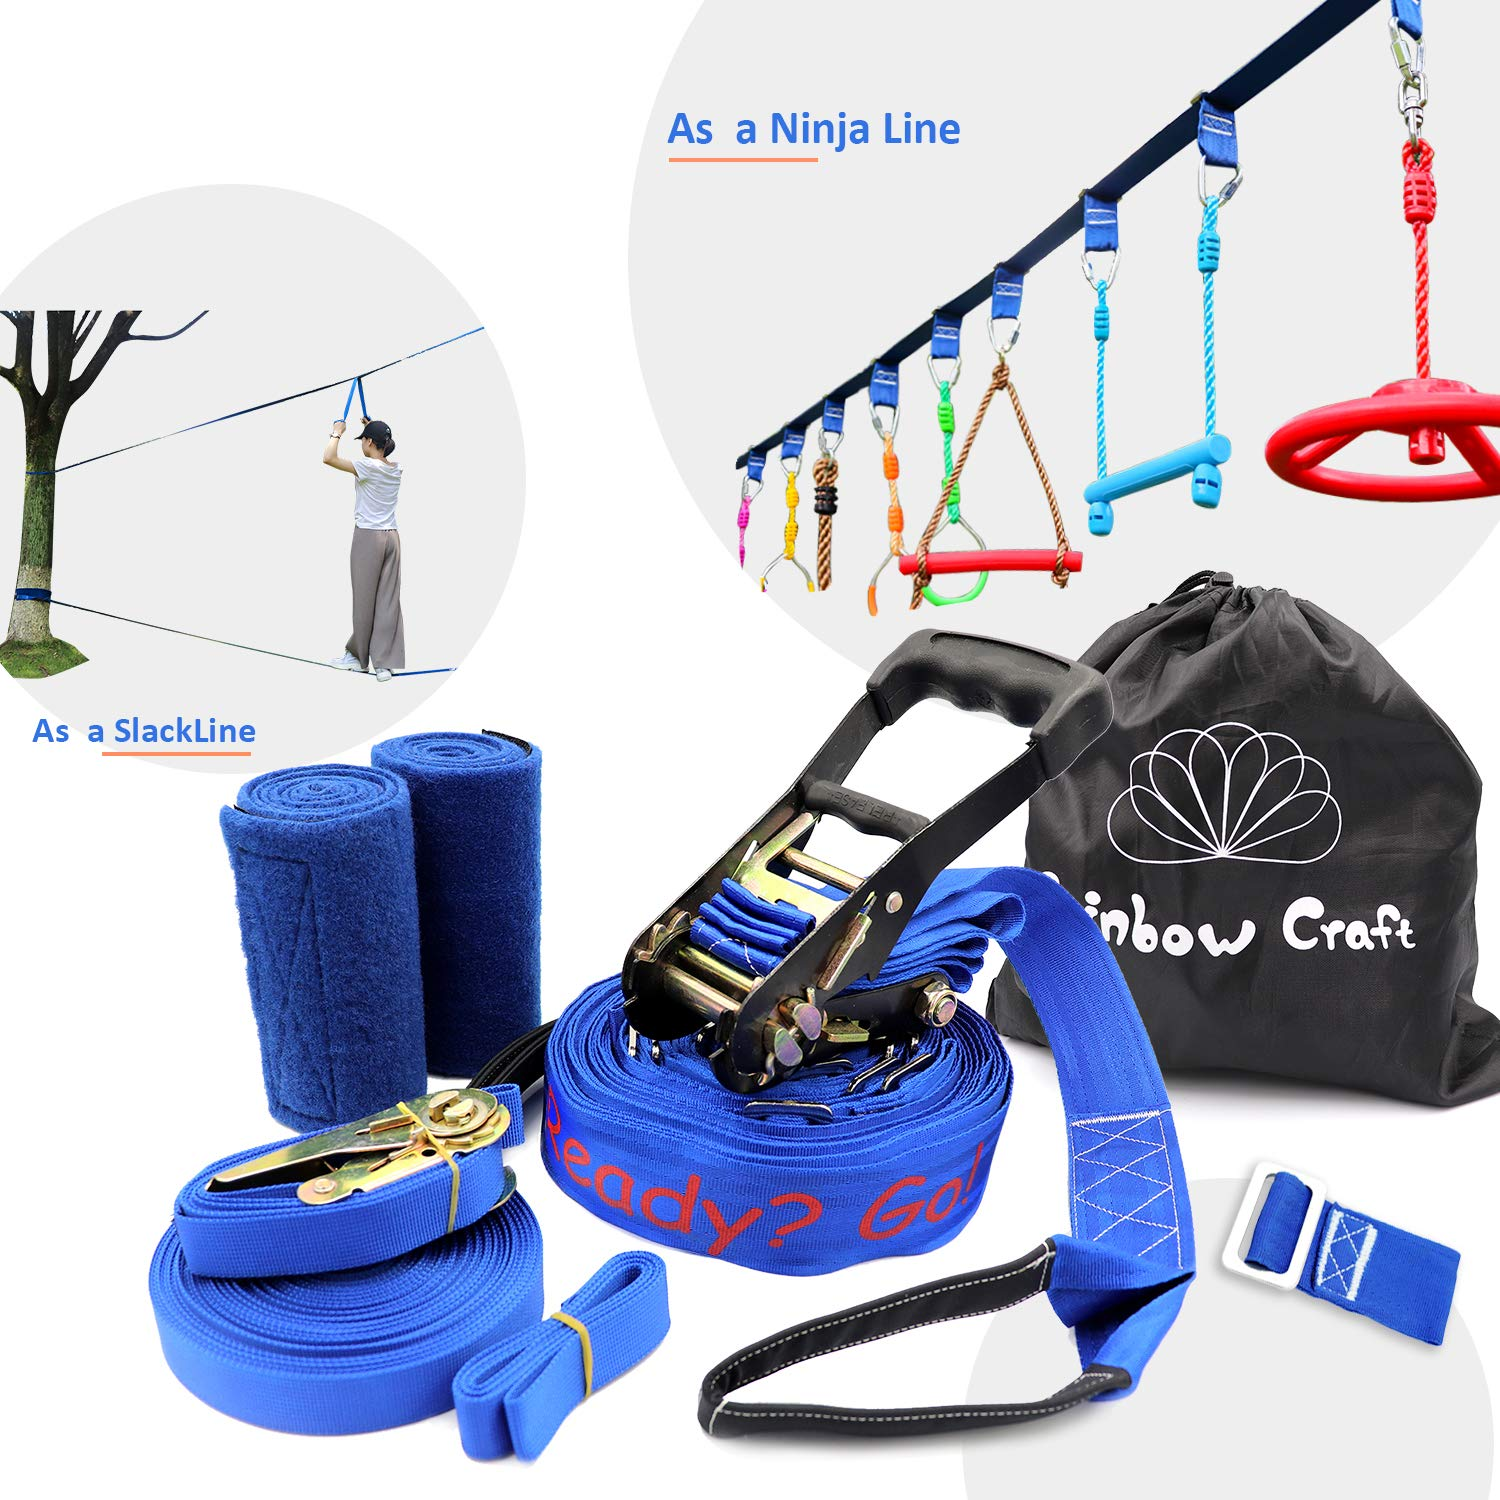 Rainbow Craft Ninjaline Slackline for Obstacle Course Set, with Removable Loops for Kids Backyard Outdoor Play - Printing Ninja Line Type by Rainbow Craft